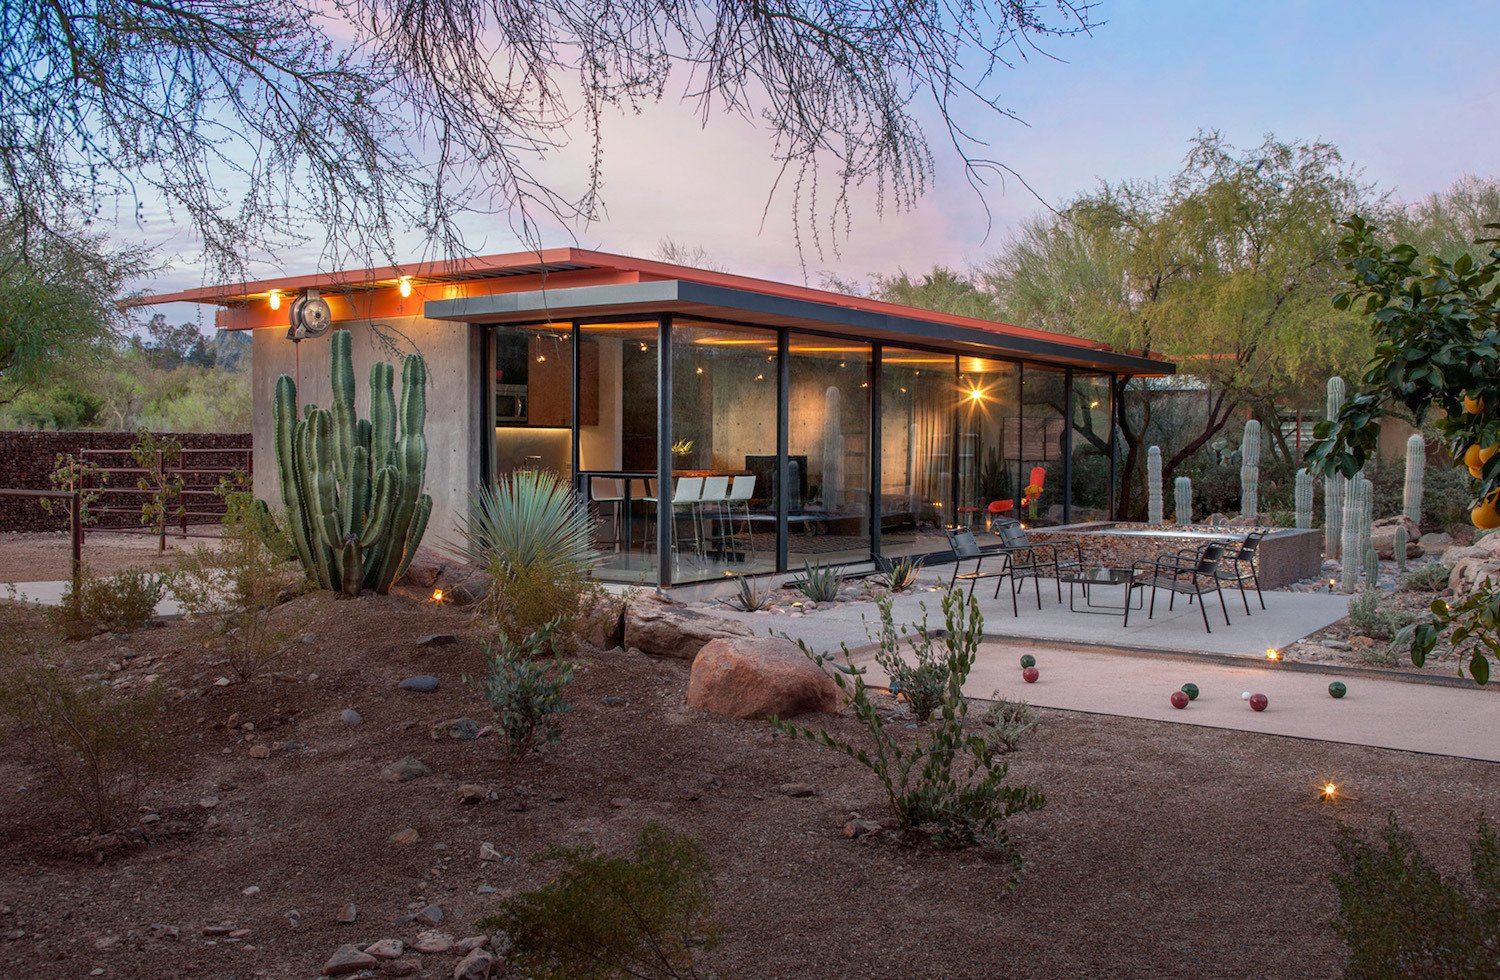 Outdoor, Desert, Hardscapes, Boulders, Trees, Concrete, and Landscape  Best Outdoor Landscape Desert Photos from An Old Horse Barn Is Repurposed as a Chic Desert Guesthouse